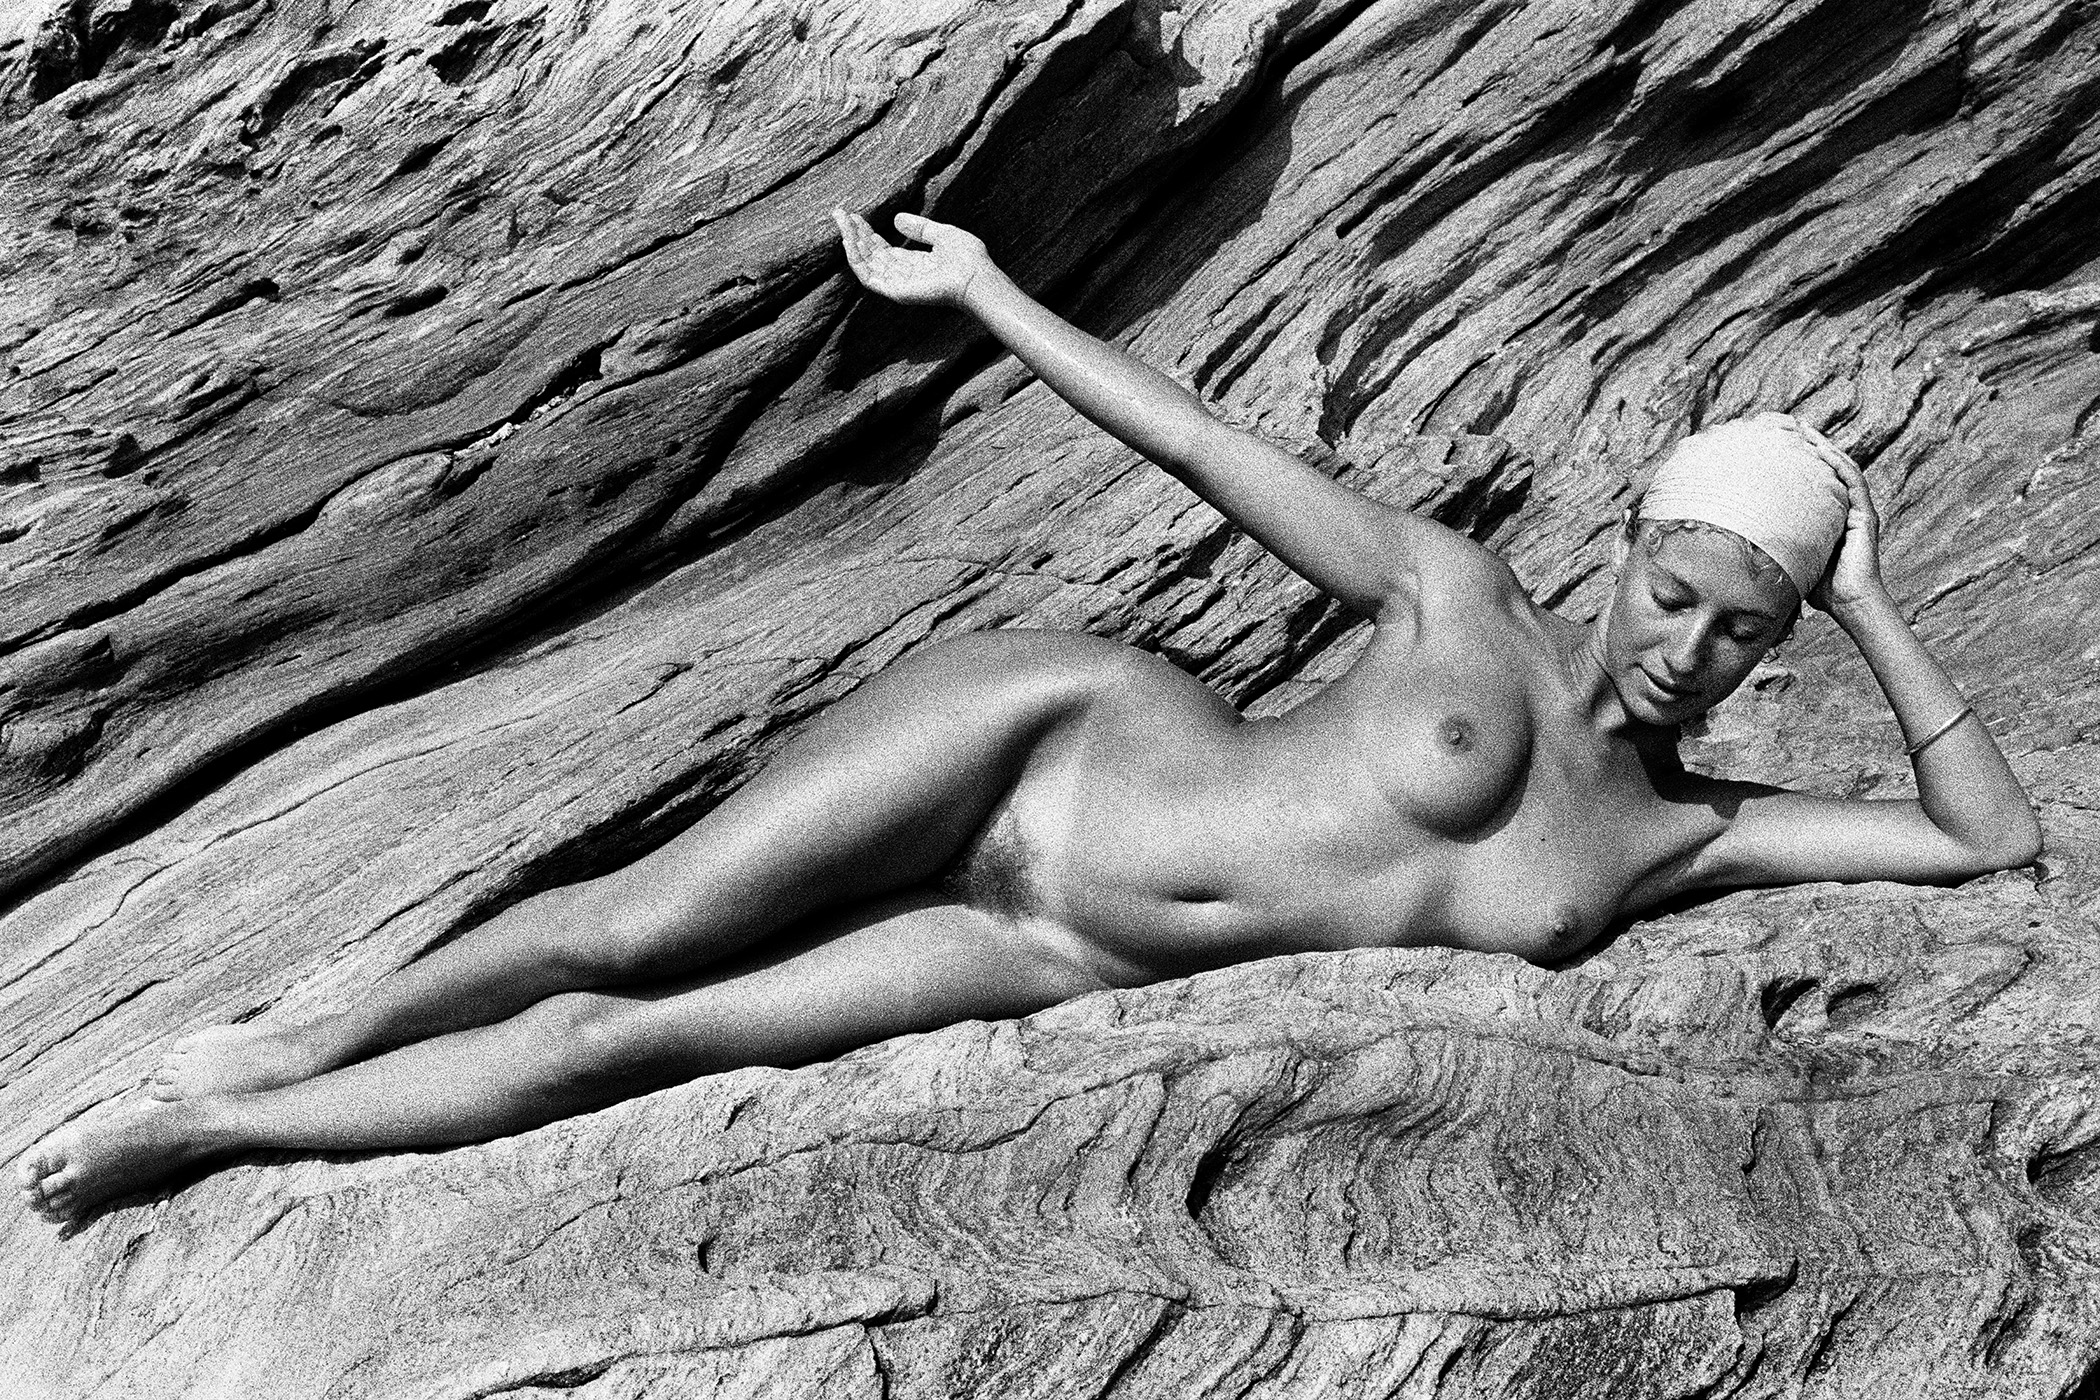 Nude on the rock